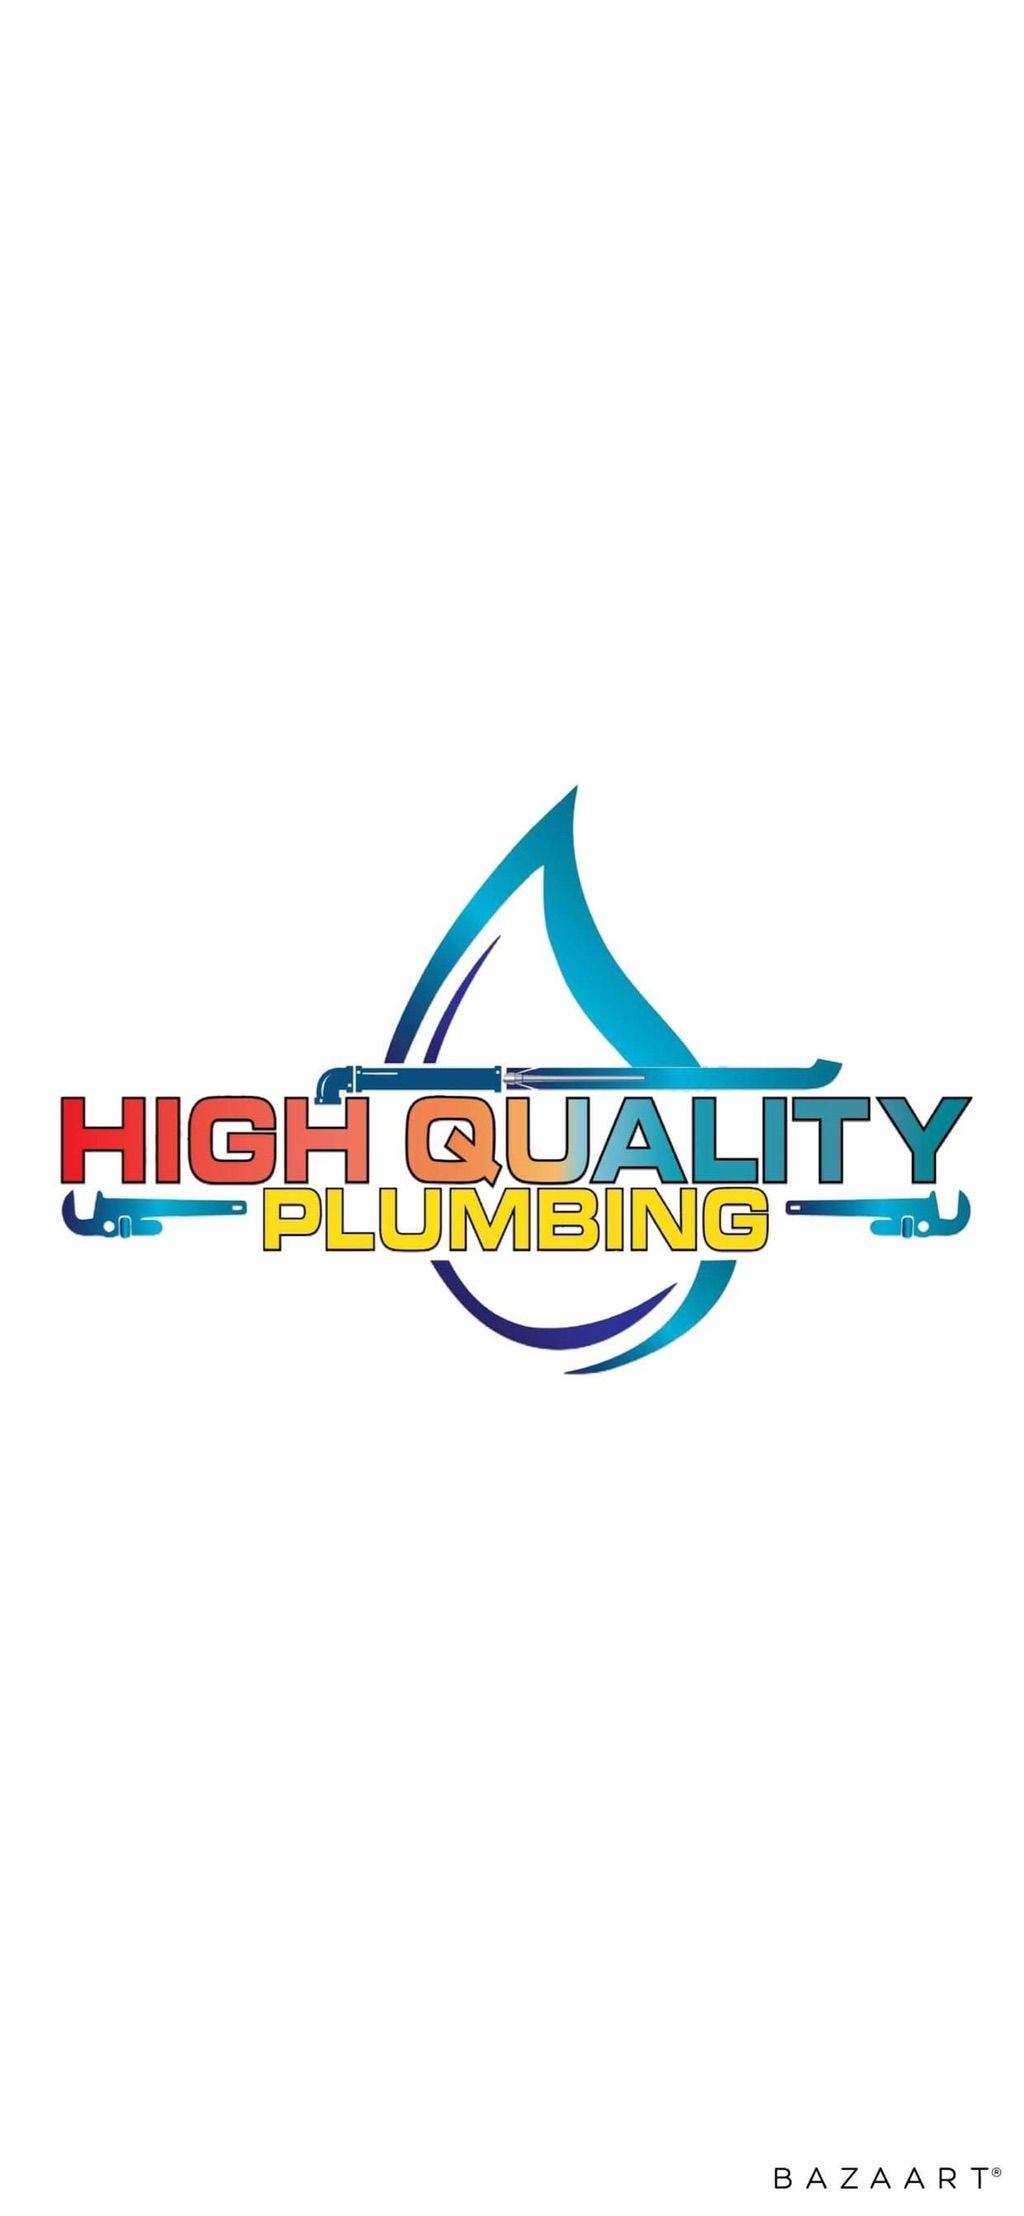 High quality plumbing & rooter